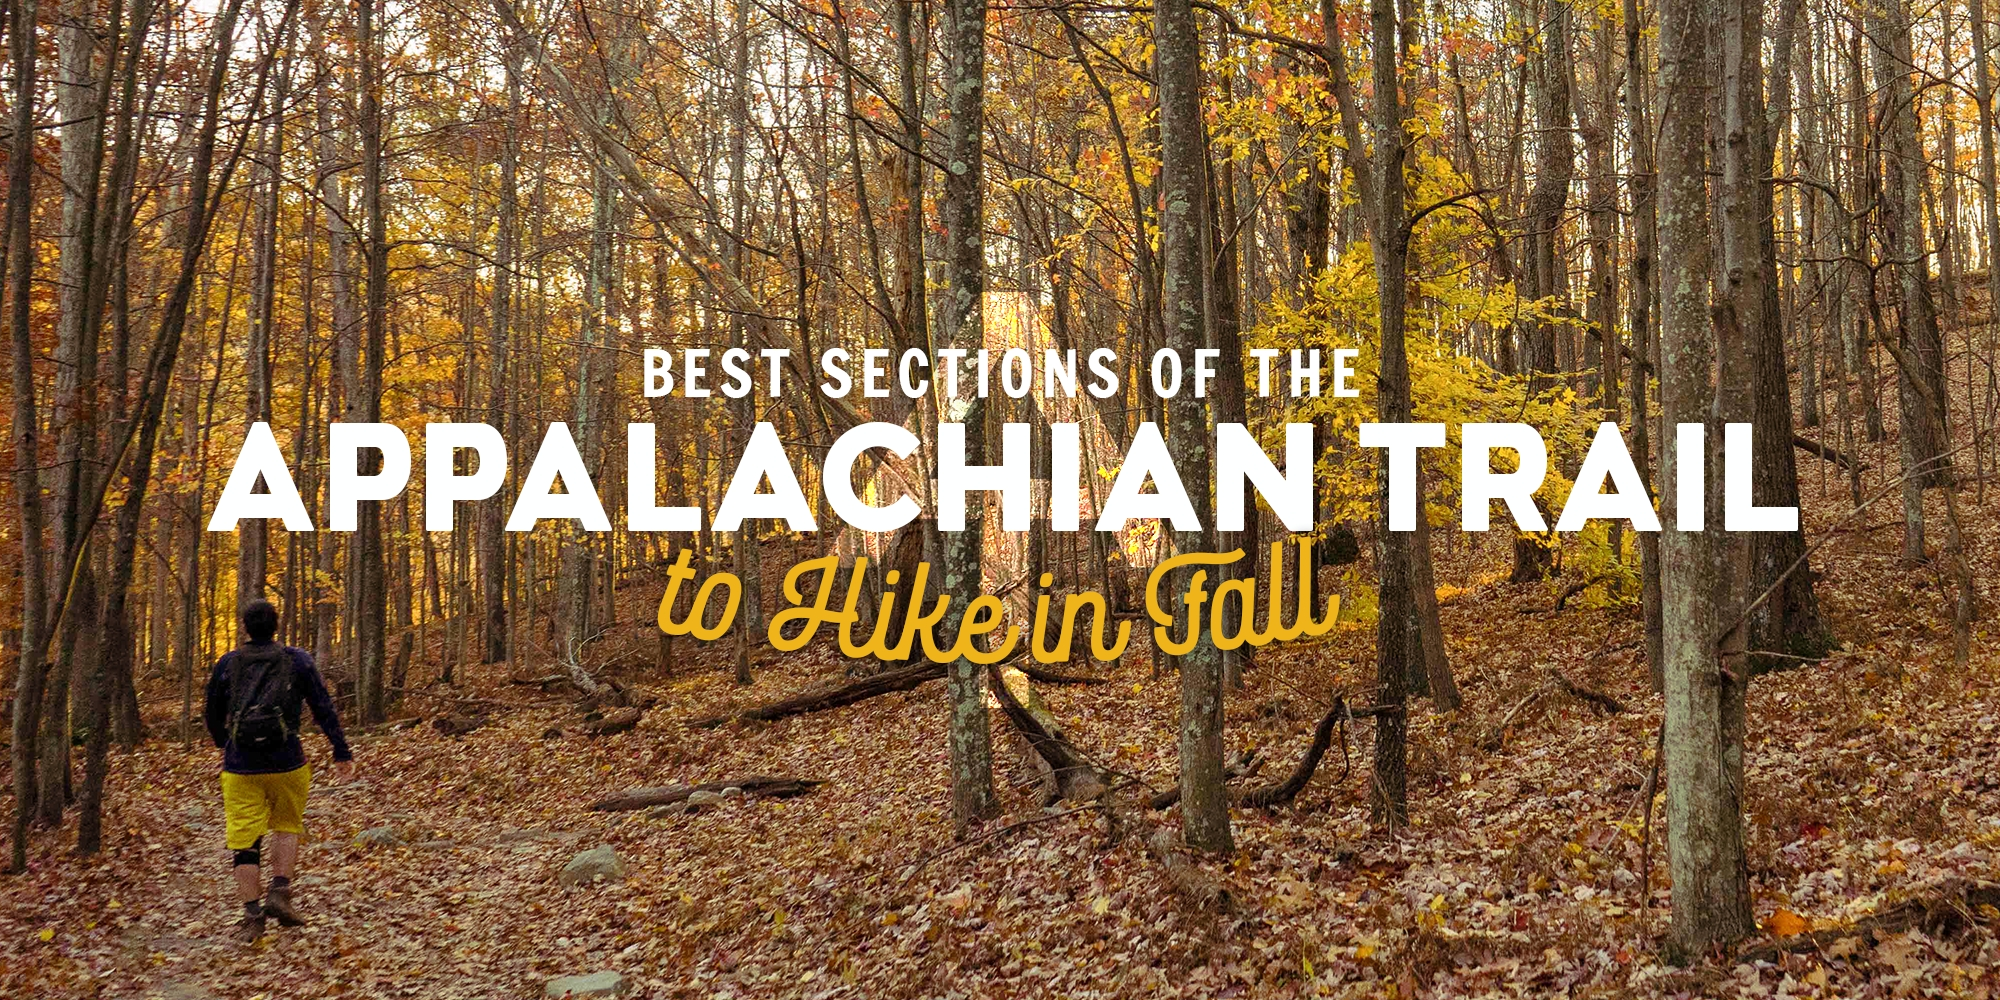 Best Sections of the Appalachian Trail to Hike in the Fall